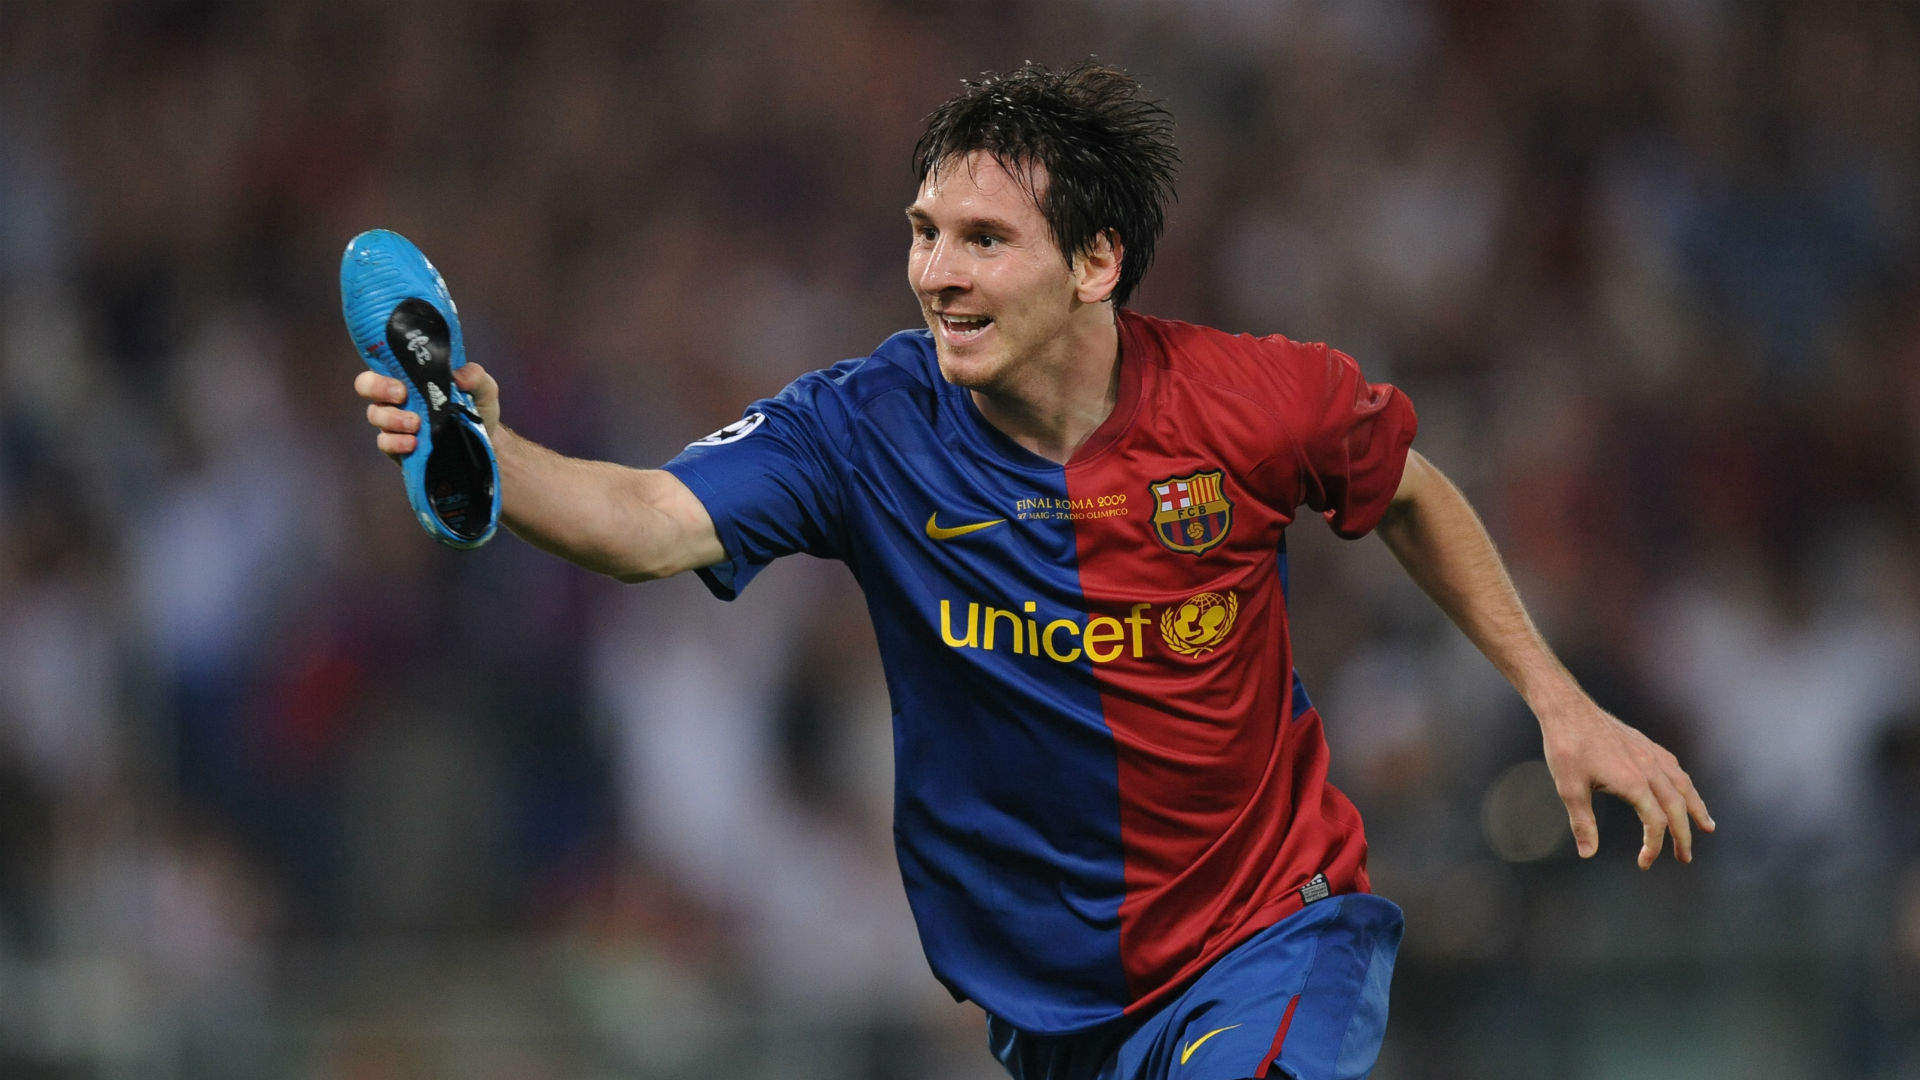 Lionel Messi Barcelona Adidas F50i 2009 CL final